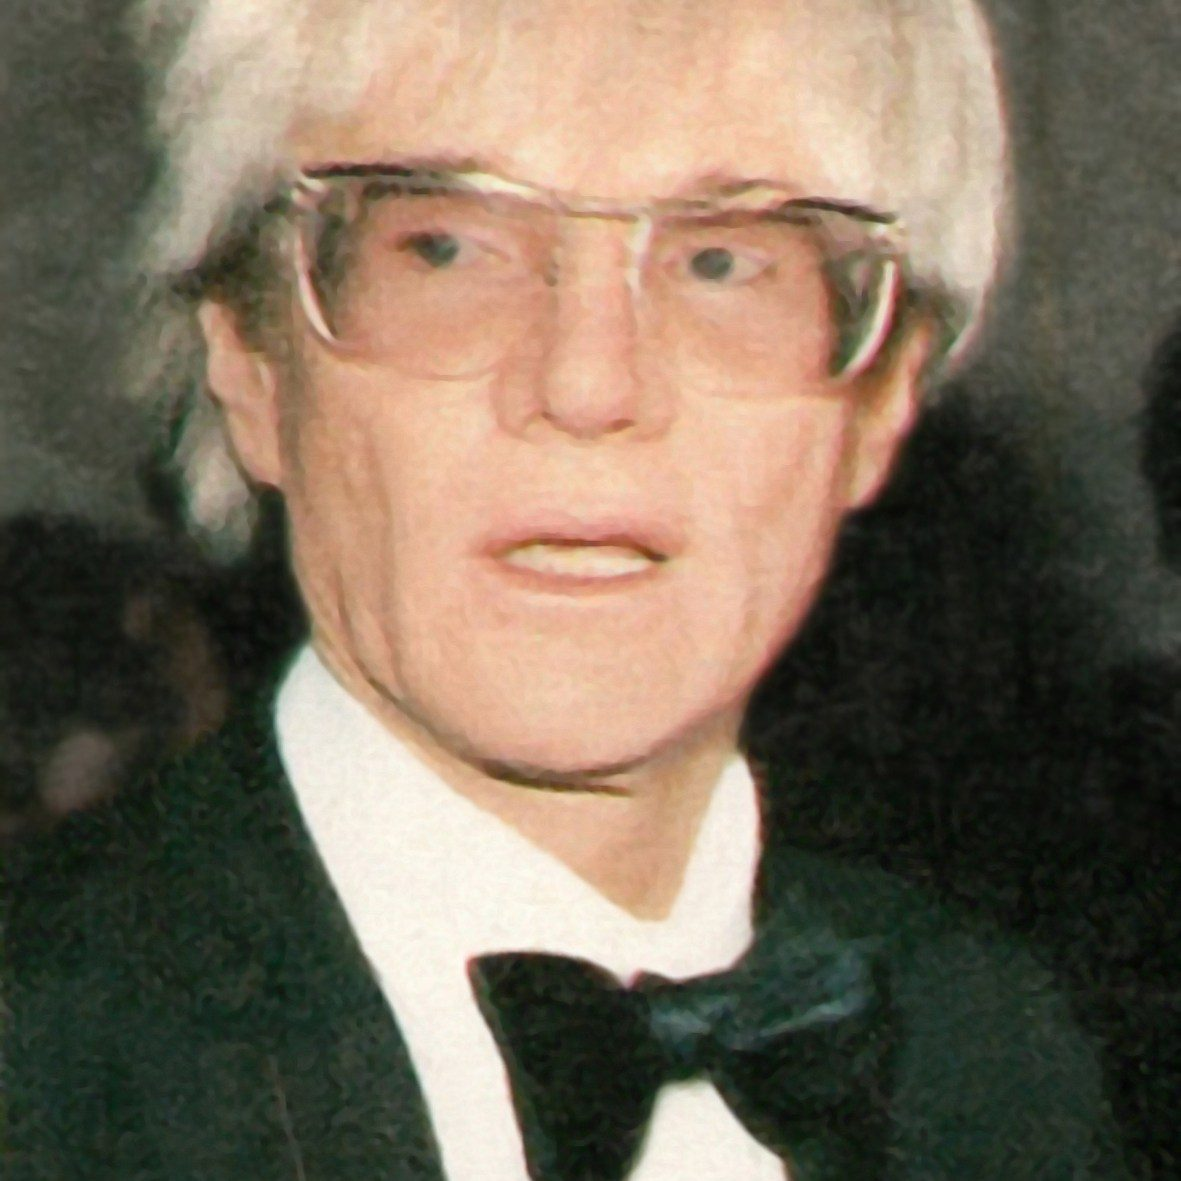 Andy-Warhol-in-Christian-Roth